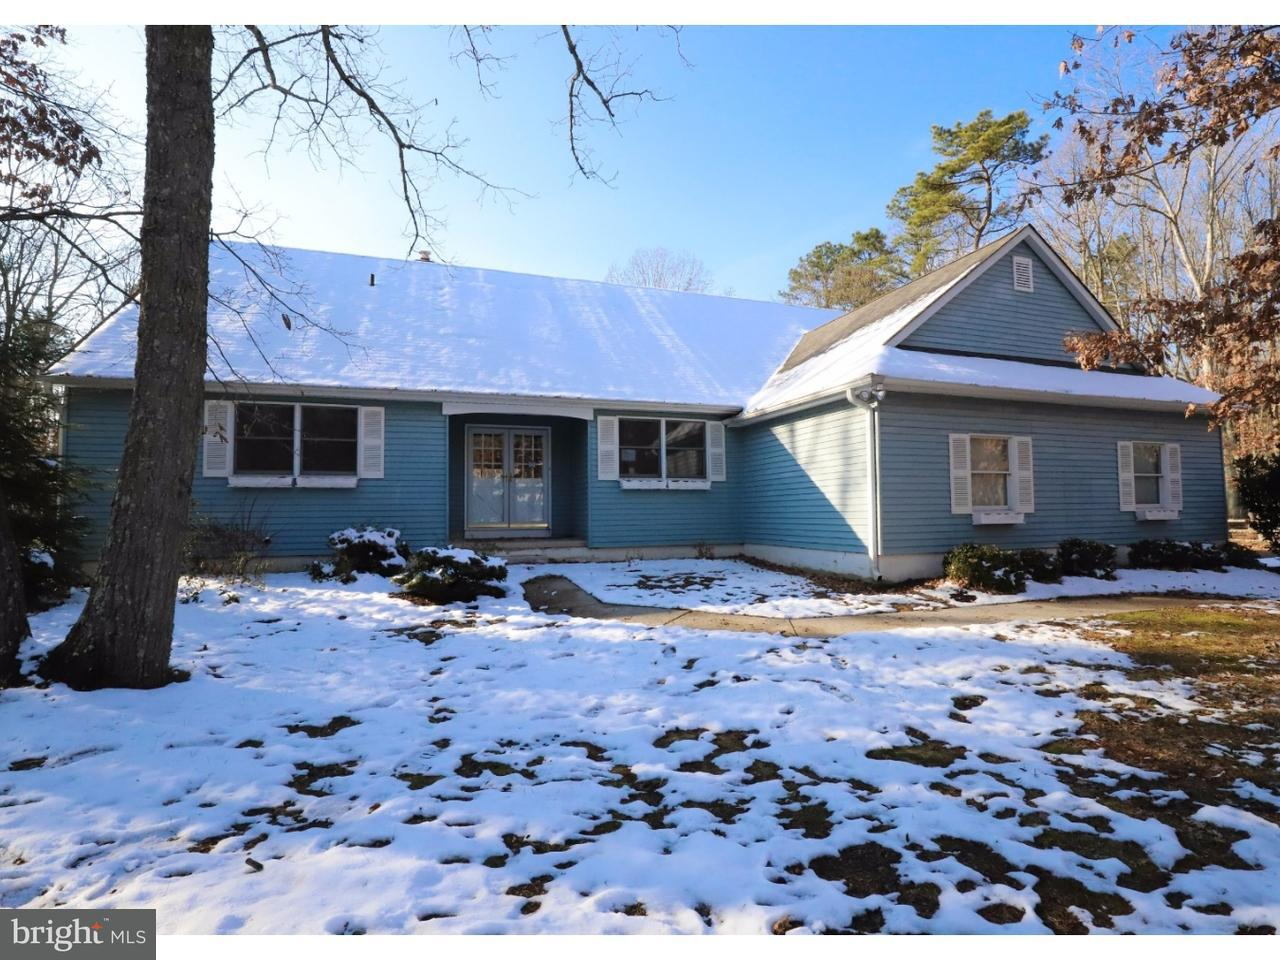 Single Family Home for Sale at 443 PRICKETTS MILL Road Tabernacle Twp, New Jersey 08088 United States